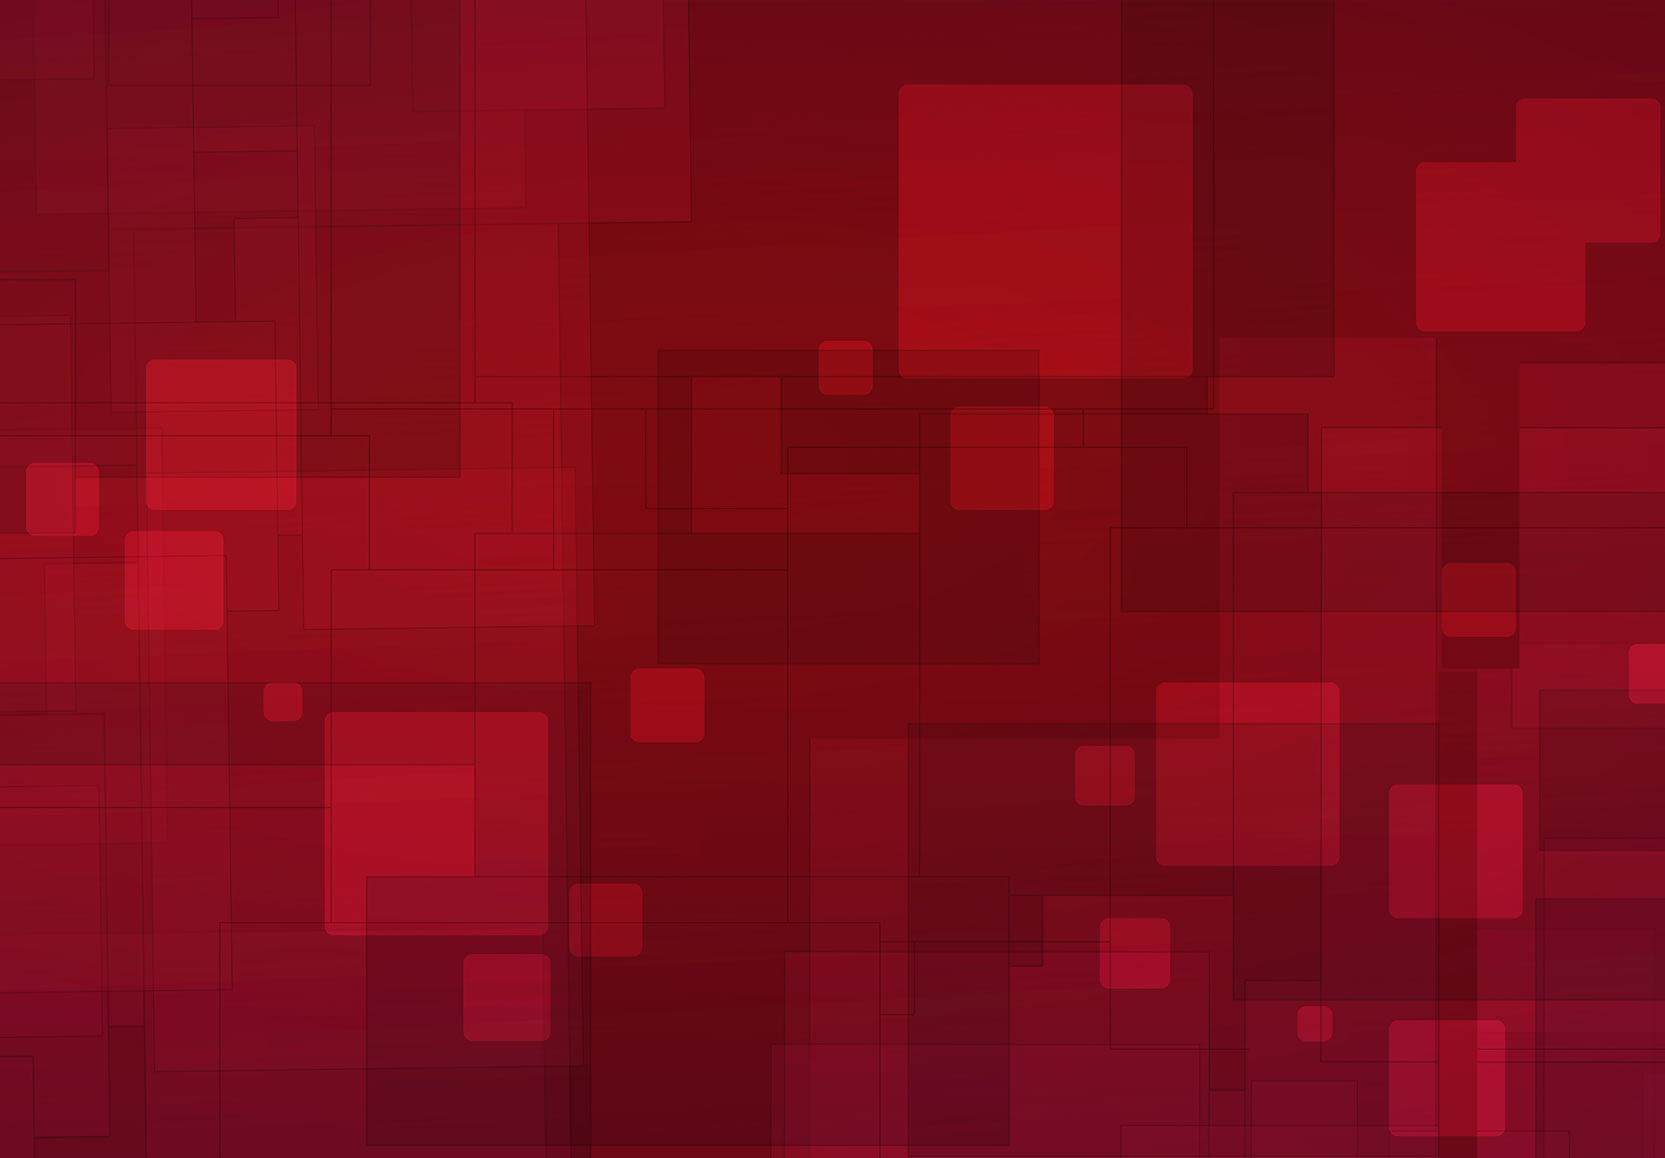 Red Shapes